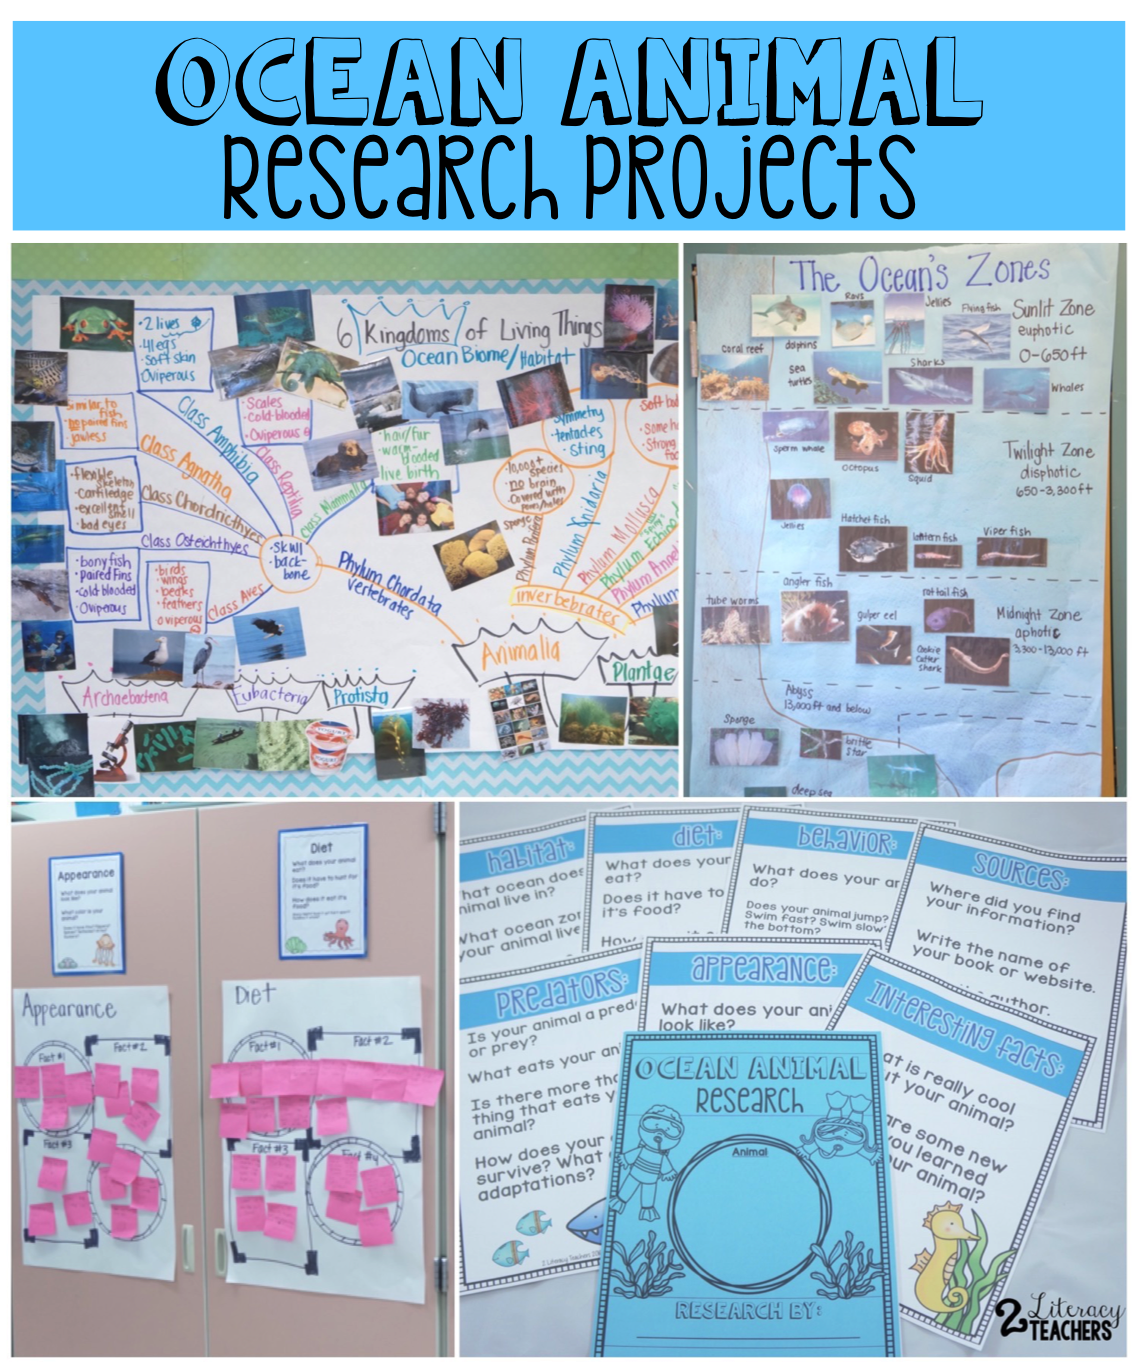 Ocean Animal Research Writing Projects The Resources Used In A Second Grade Classroom To Guide